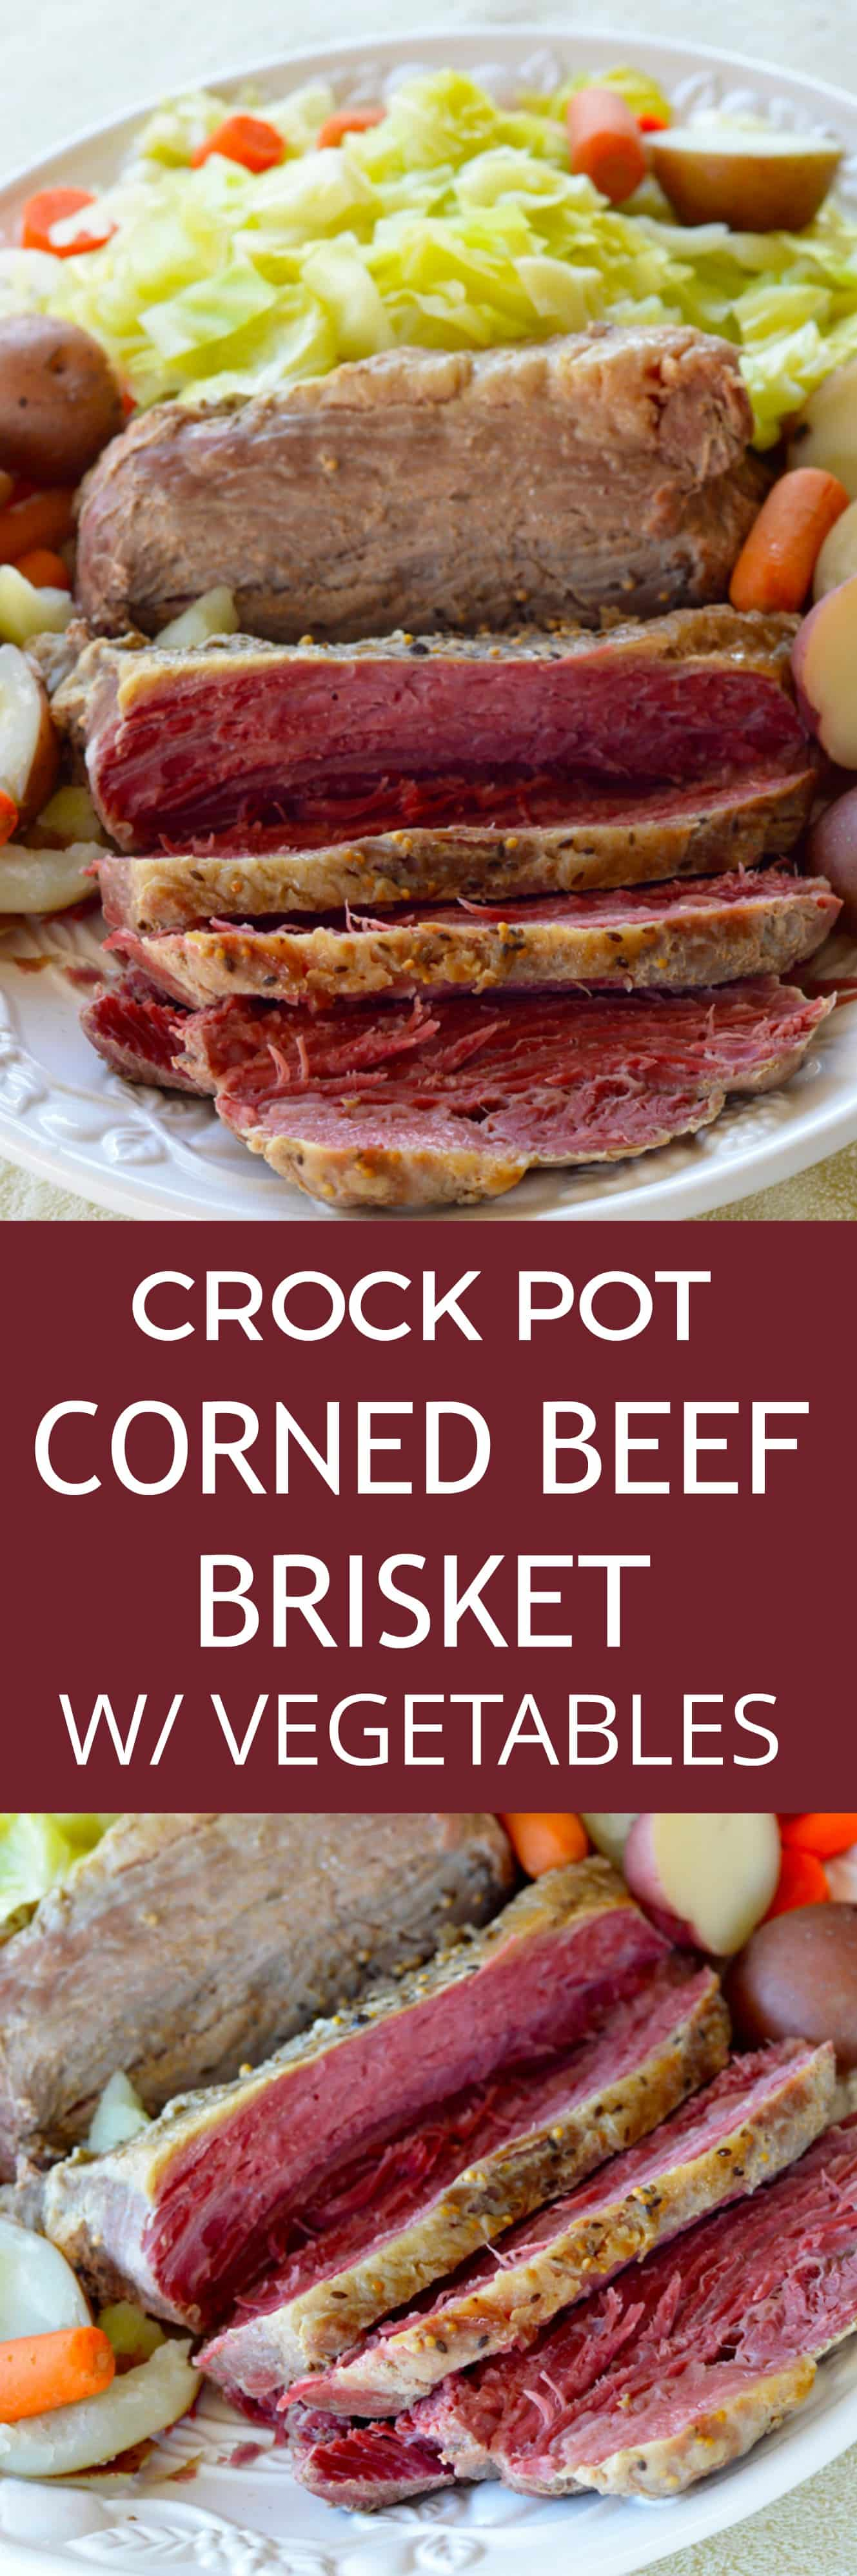 DELICIOUS CROCK POT Corned Beef Brisket with Vegetables recipe!  This slow cooker recipe cooks a 4 pound corned beef brisket with cabbage, carrots, potatoes and onion to create a amazing dinner! Use the leftovers the next day for the best BBQ sandwiches!